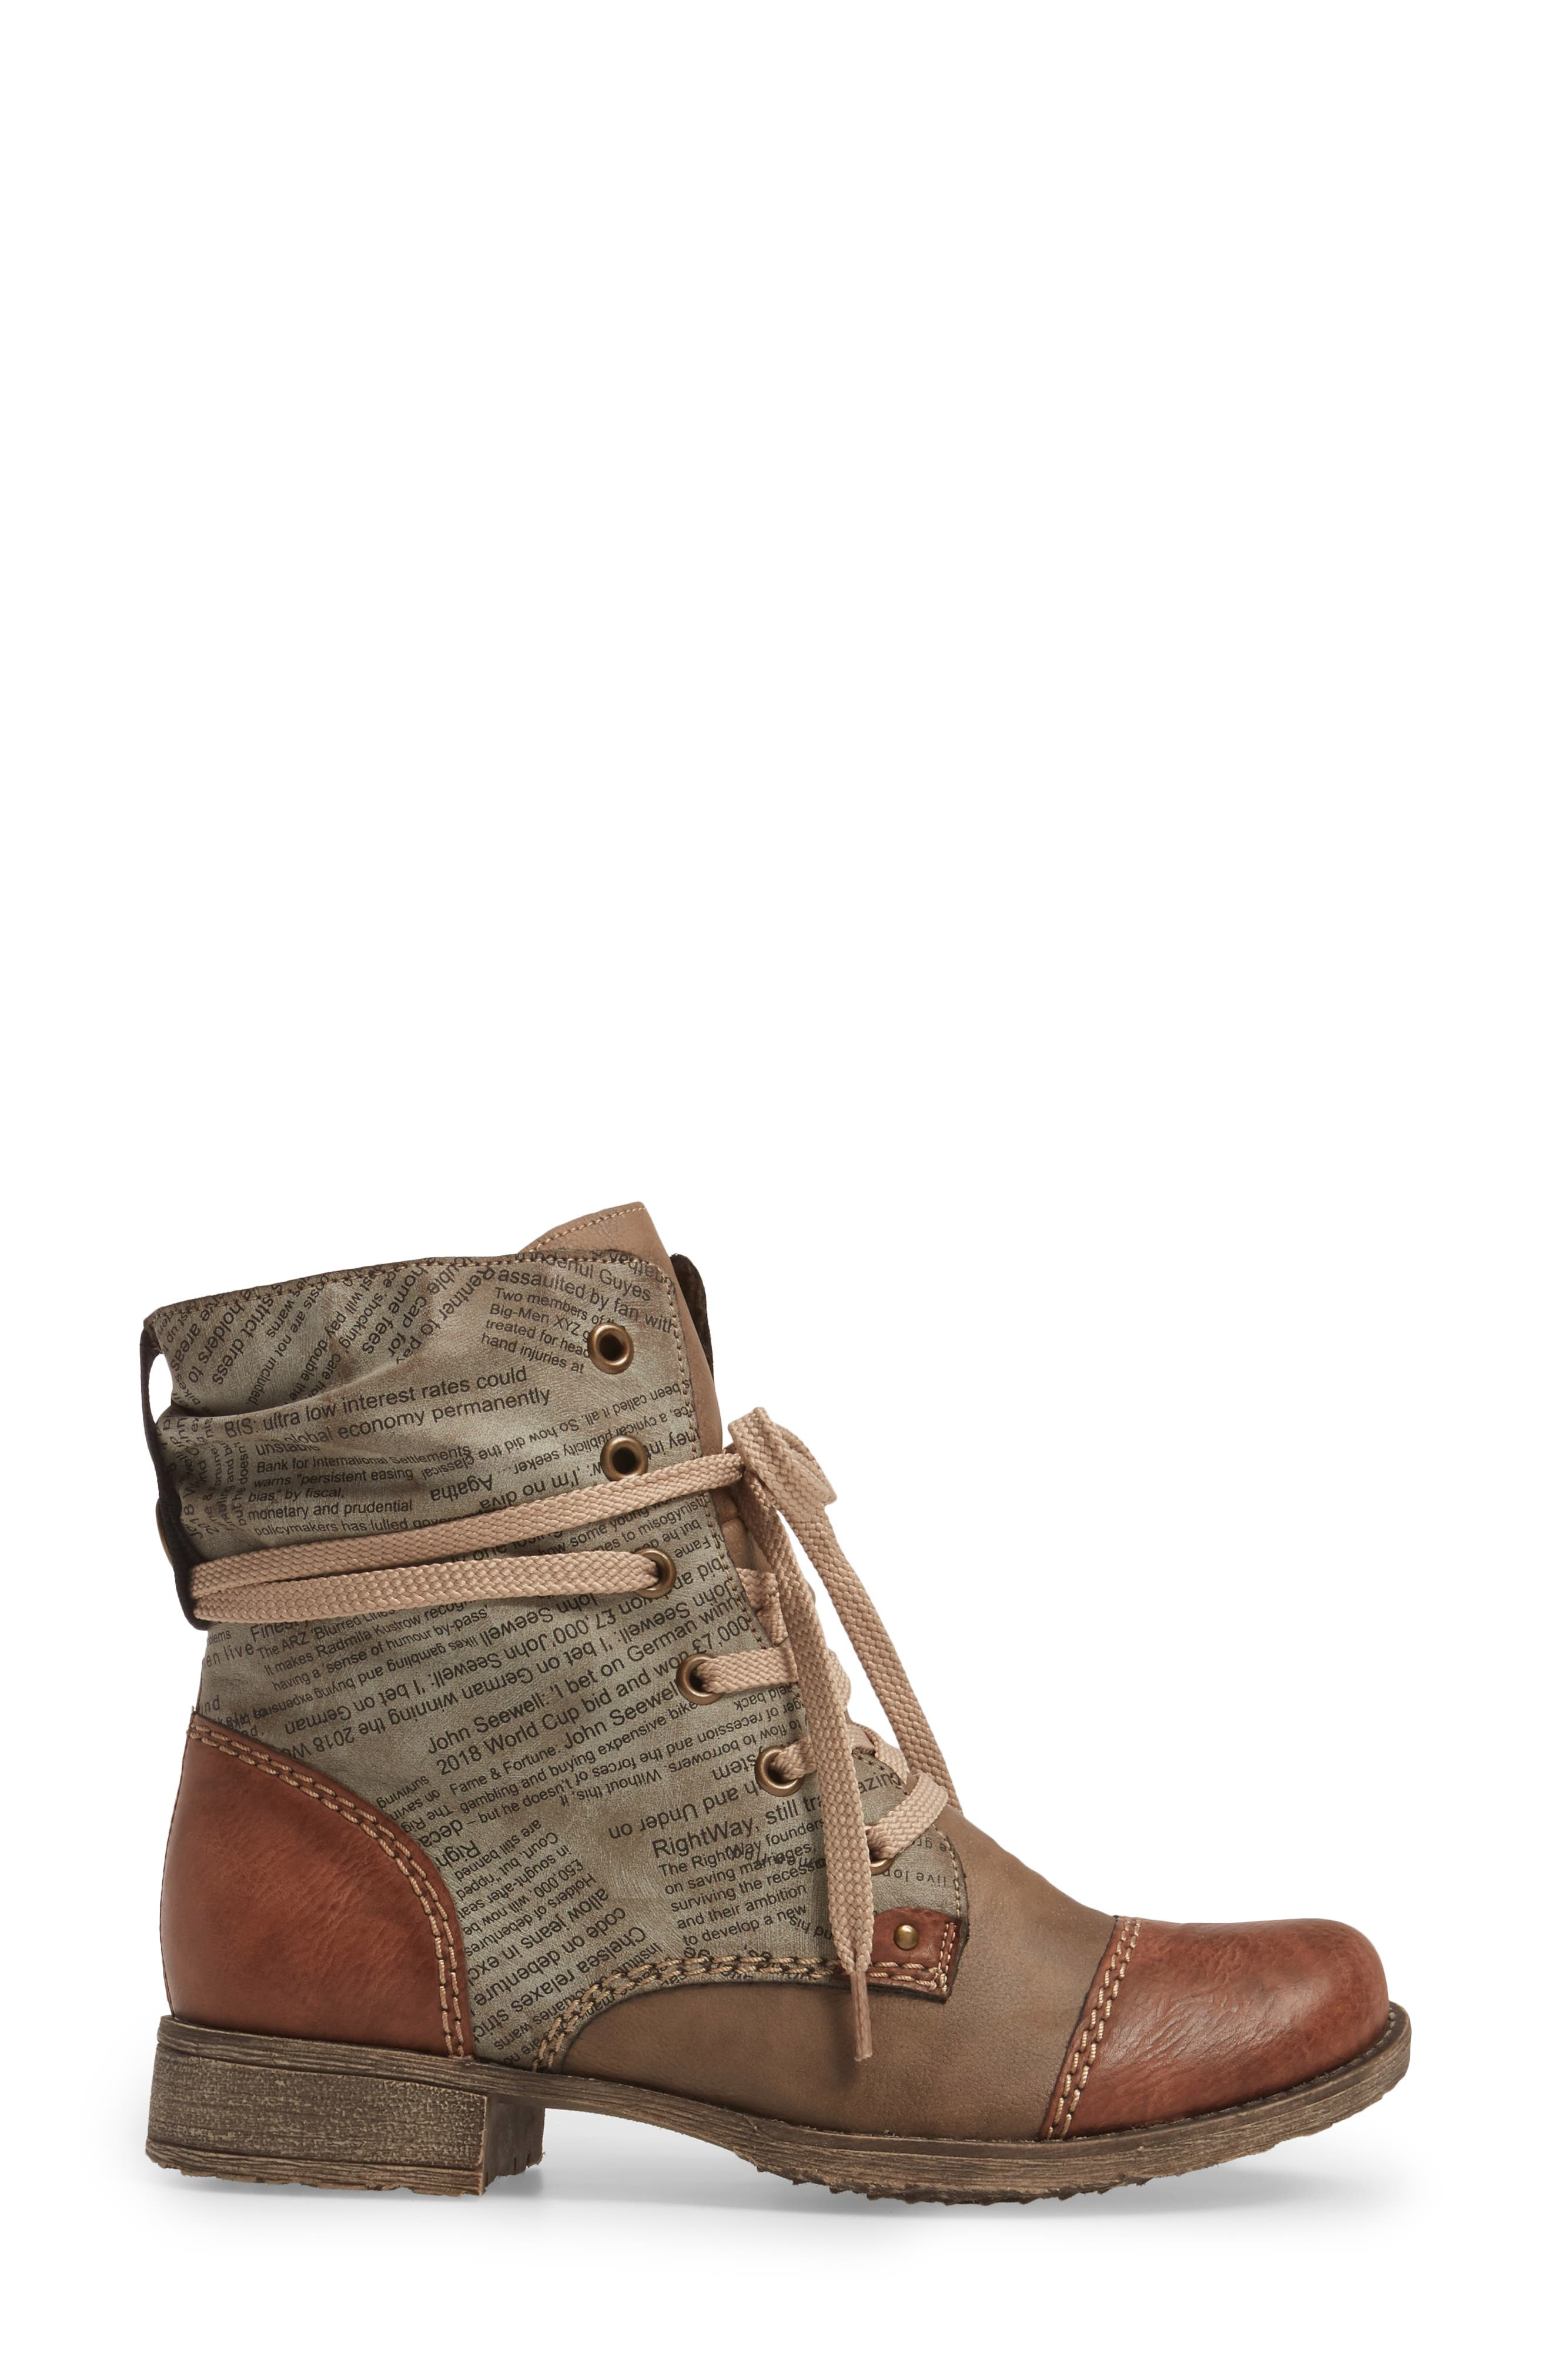 Payton 22 Lace-Up Boot,                             Alternate thumbnail 3, color,                             BRANDY/ CIGAR FAUX LEATHER